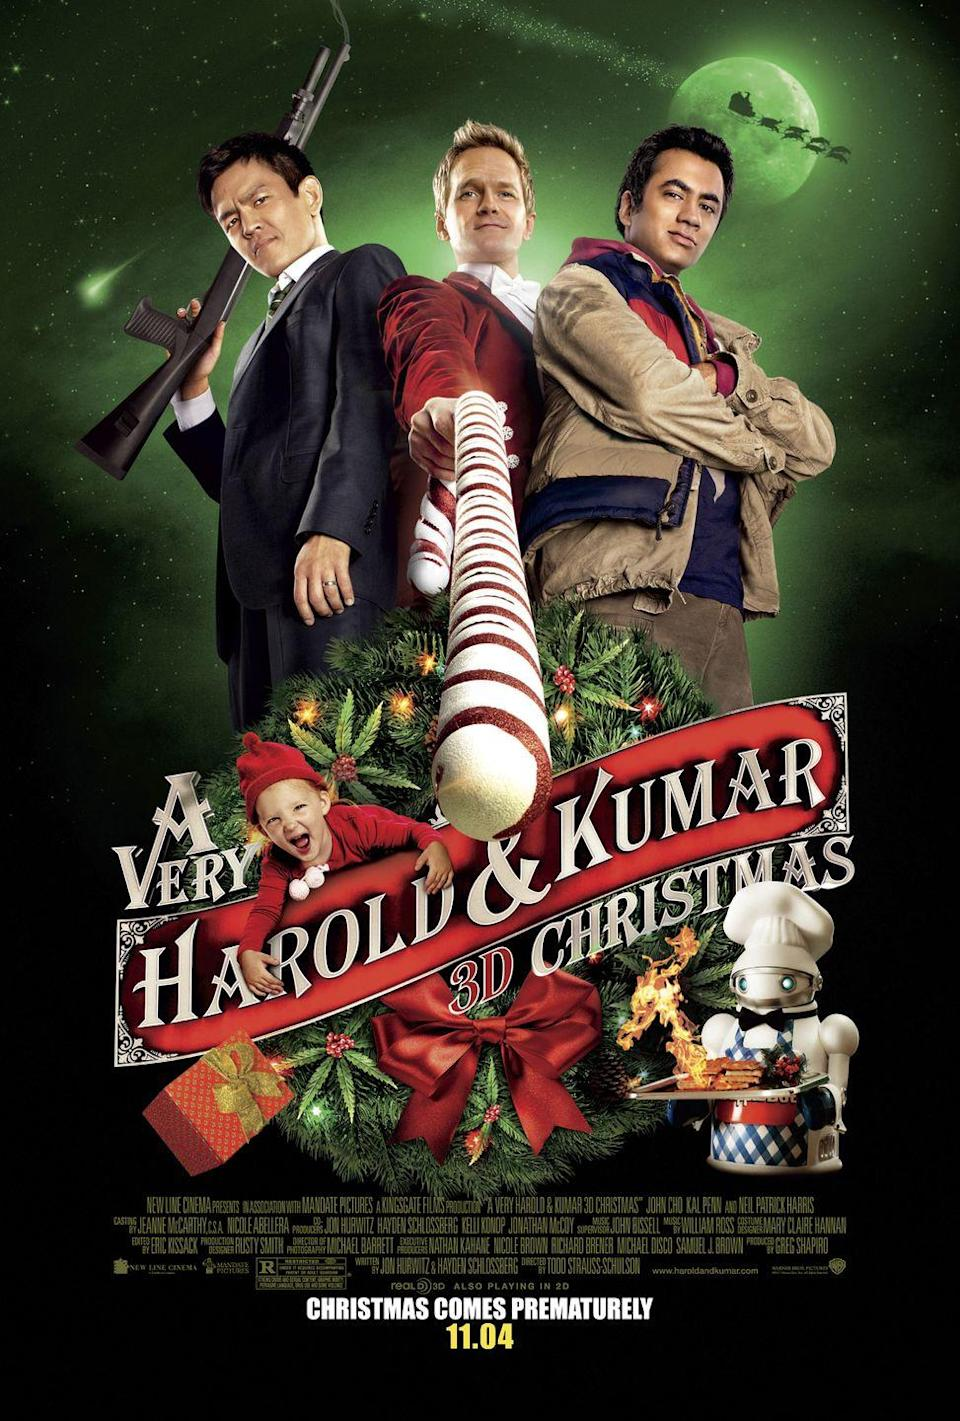 """<p>Looking for something to watch after the little ones go to bed? You'll love this hilarious holiday comedy, which is the third installment of the <em><em>Harold & Kumar </em></em>series<em><em>.</em></em></p><p><a class=""""link rapid-noclick-resp"""" href=""""https://www.amazon.com/Very-Harold-Kumar-Christmas/dp/B006PPW98U?tag=syn-yahoo-20&ascsubtag=%5Bartid%7C10055.g.1315%5Bsrc%7Cyahoo-us"""" rel=""""nofollow noopener"""" target=""""_blank"""" data-ylk=""""slk:WATCH NOW"""">WATCH NOW</a></p><p><strong>RELATED:</strong> <a href=""""https://www.goodhousekeeping.com/holidays/christmas-ideas/g30200011/funny-christmas-movies/"""" rel=""""nofollow noopener"""" target=""""_blank"""" data-ylk=""""slk:30+ Funny Christmas Movies That'll Make You Laugh Harder Than Santa"""" class=""""link rapid-noclick-resp"""">30+ Funny Christmas Movies That'll Make You Laugh Harder Than Santa</a></p>"""